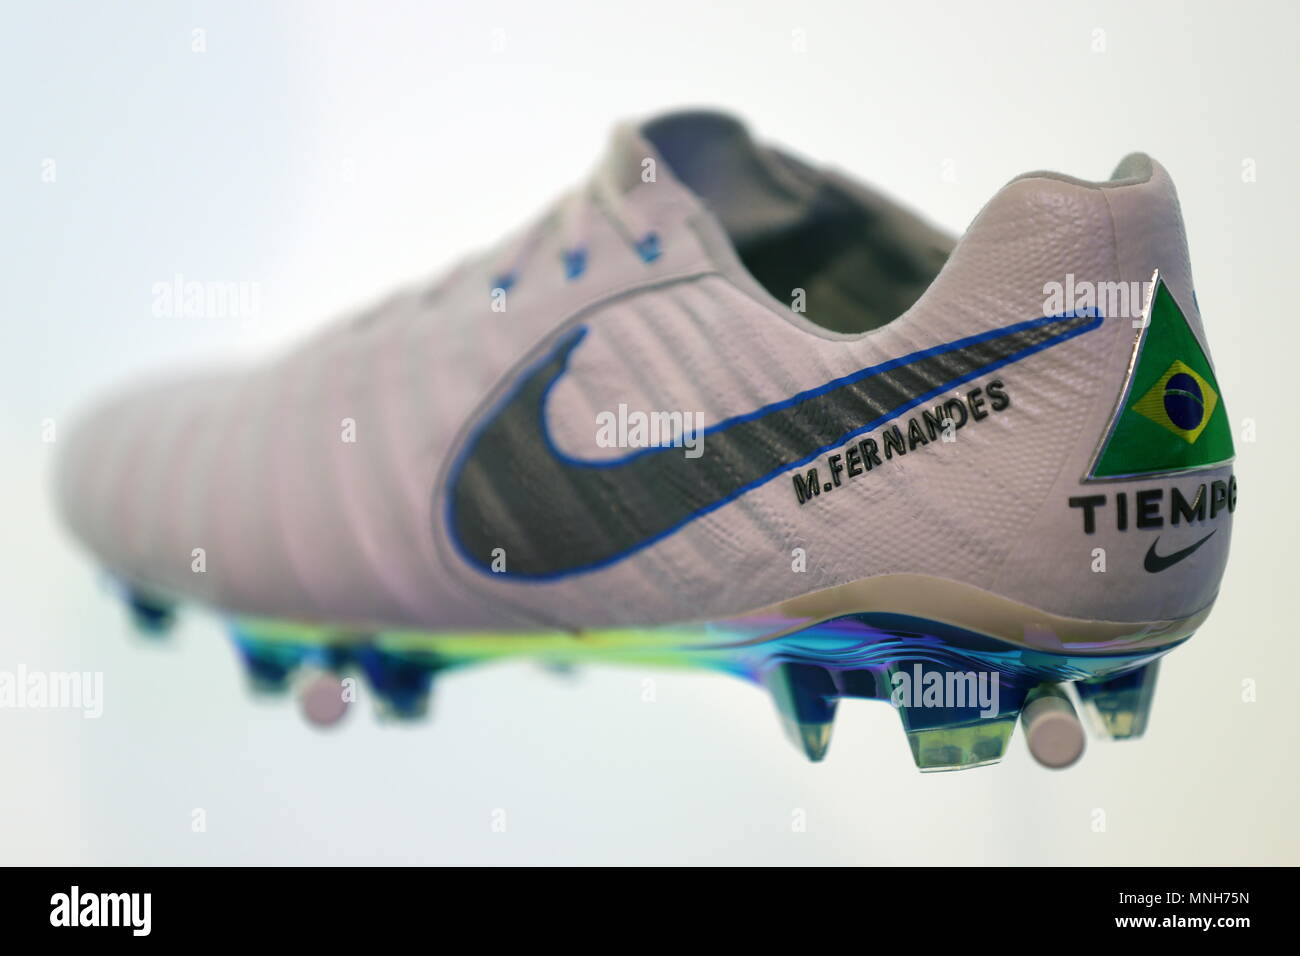 21500f6f3 Nike Football Boots Stock Photos   Nike Football Boots Stock Images ...